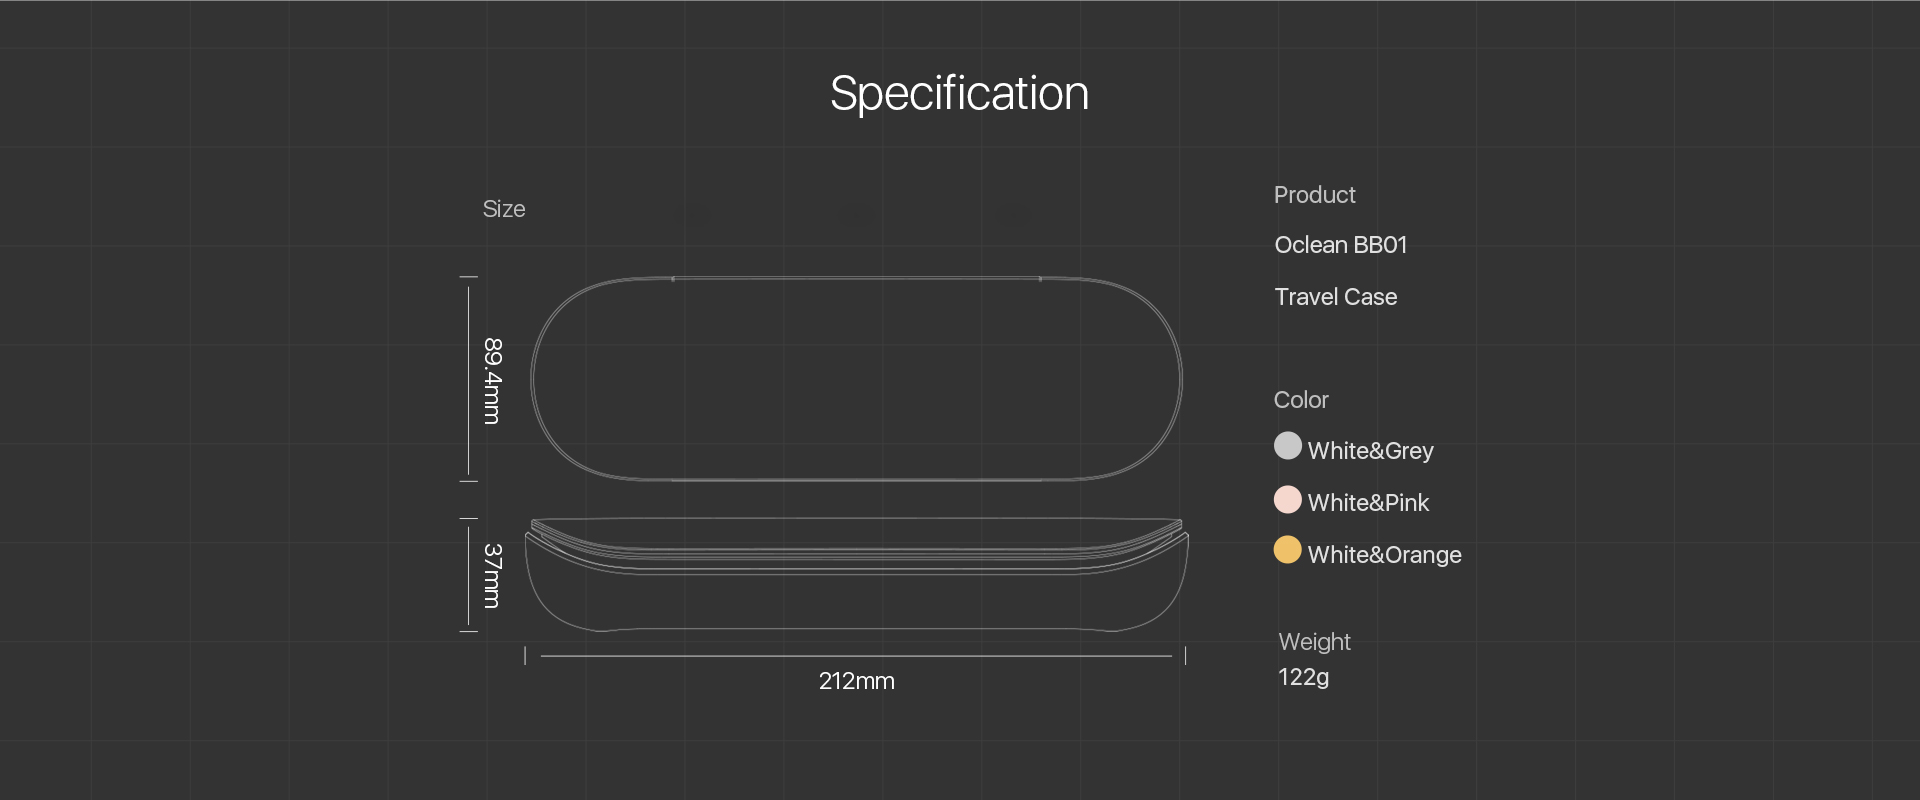 Oclean travel case specification